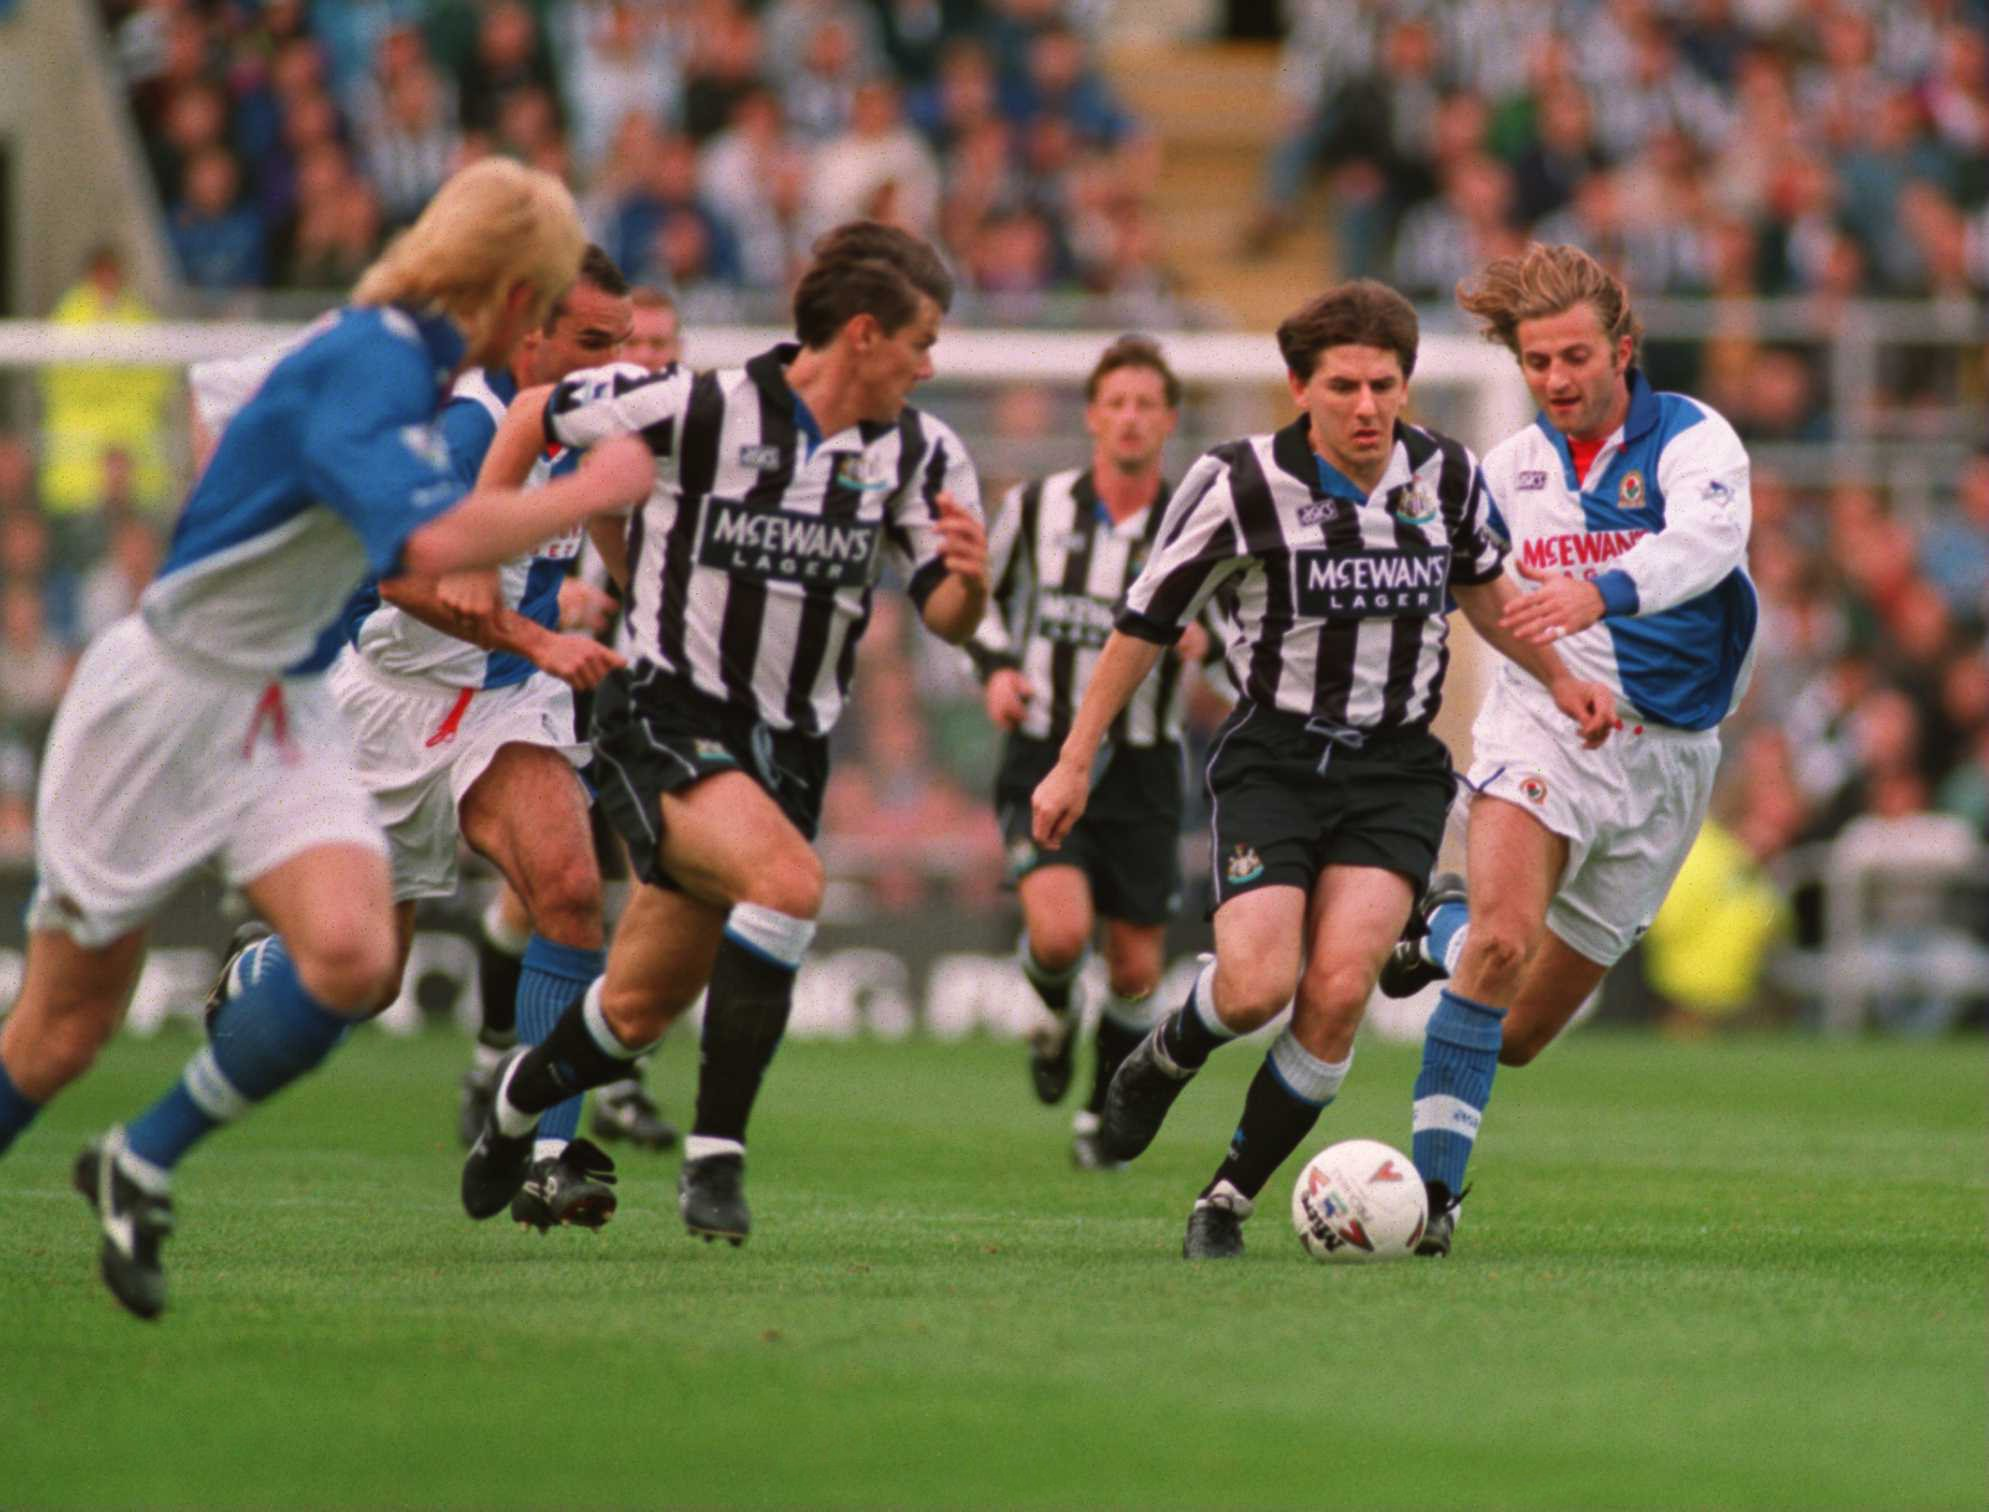 9 OCT 1994:  NEWCASTLE's PETER BEARDSLEY RUNS THROUGH THE MIDDLE OF THE BLACKBURN DEFENCE DURING THE NEWCASTLE UNITED V BLACKBURN ROVERS IN THE FA PREMIERSHIP AT ST. JAMES PARK, NEWCASTLE. Mandatory Credit: Clive Brunskill/ALLSPORT